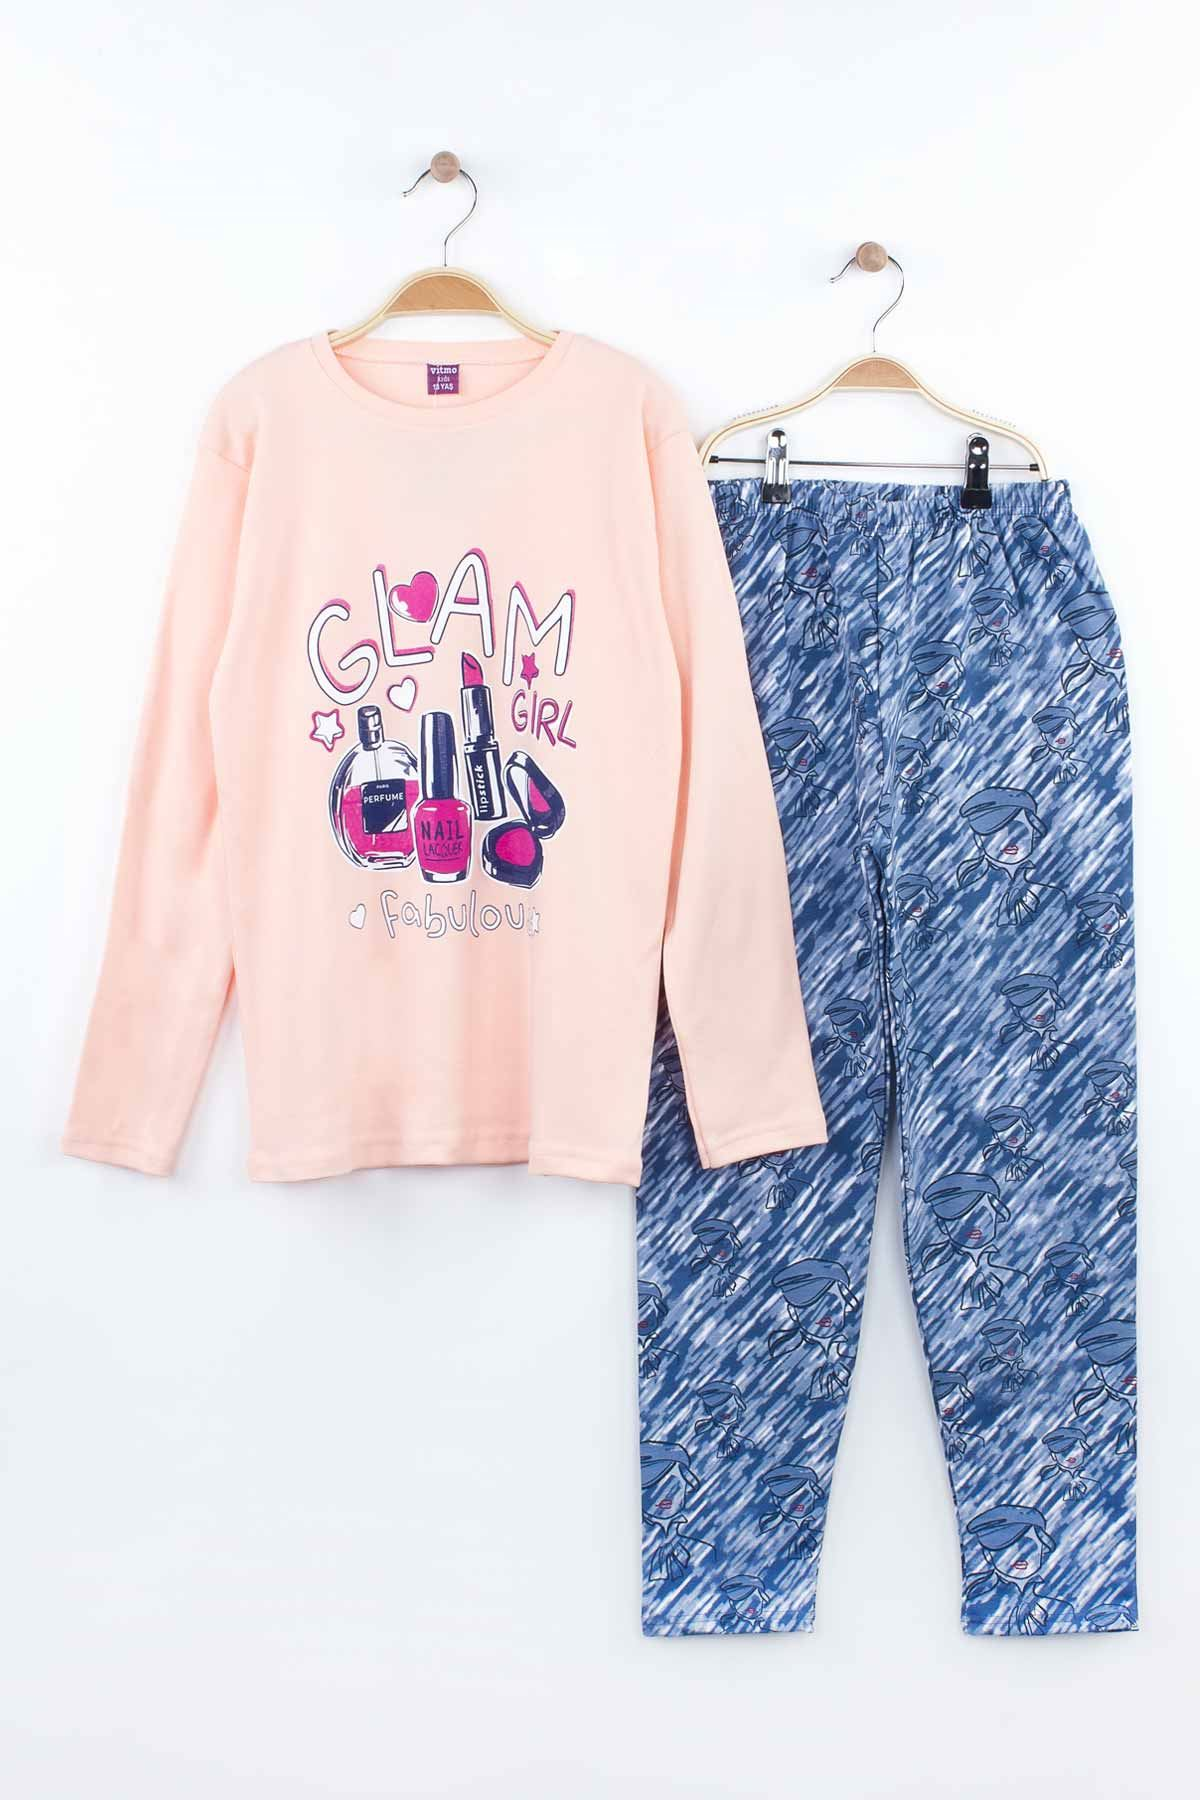 Powder Pink Girls Child Teen Young Pajamas Set Tracksuits Home Use Cotton Fabric Comfortable Clothes 2 Piece Girl Set Models